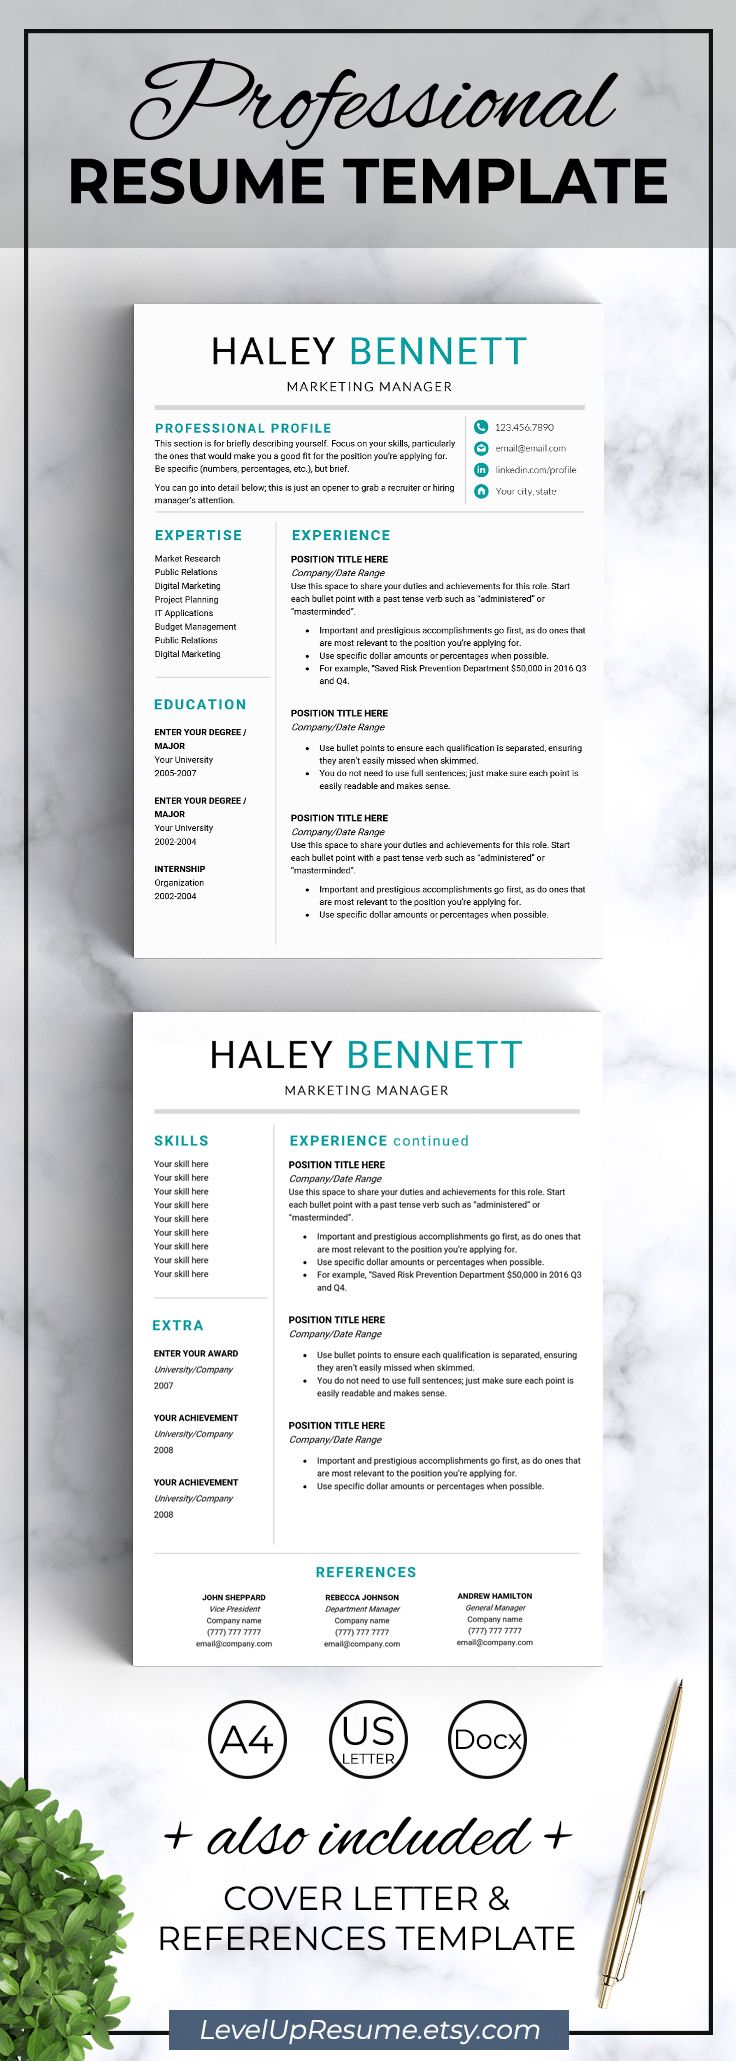 Modern resume template. Professional resume design. Career advice. Job search. Get hired! Click on the link or save the pin to your board >>>>> #career #job #resume #resumetemplate #girlboss #successfulwomen